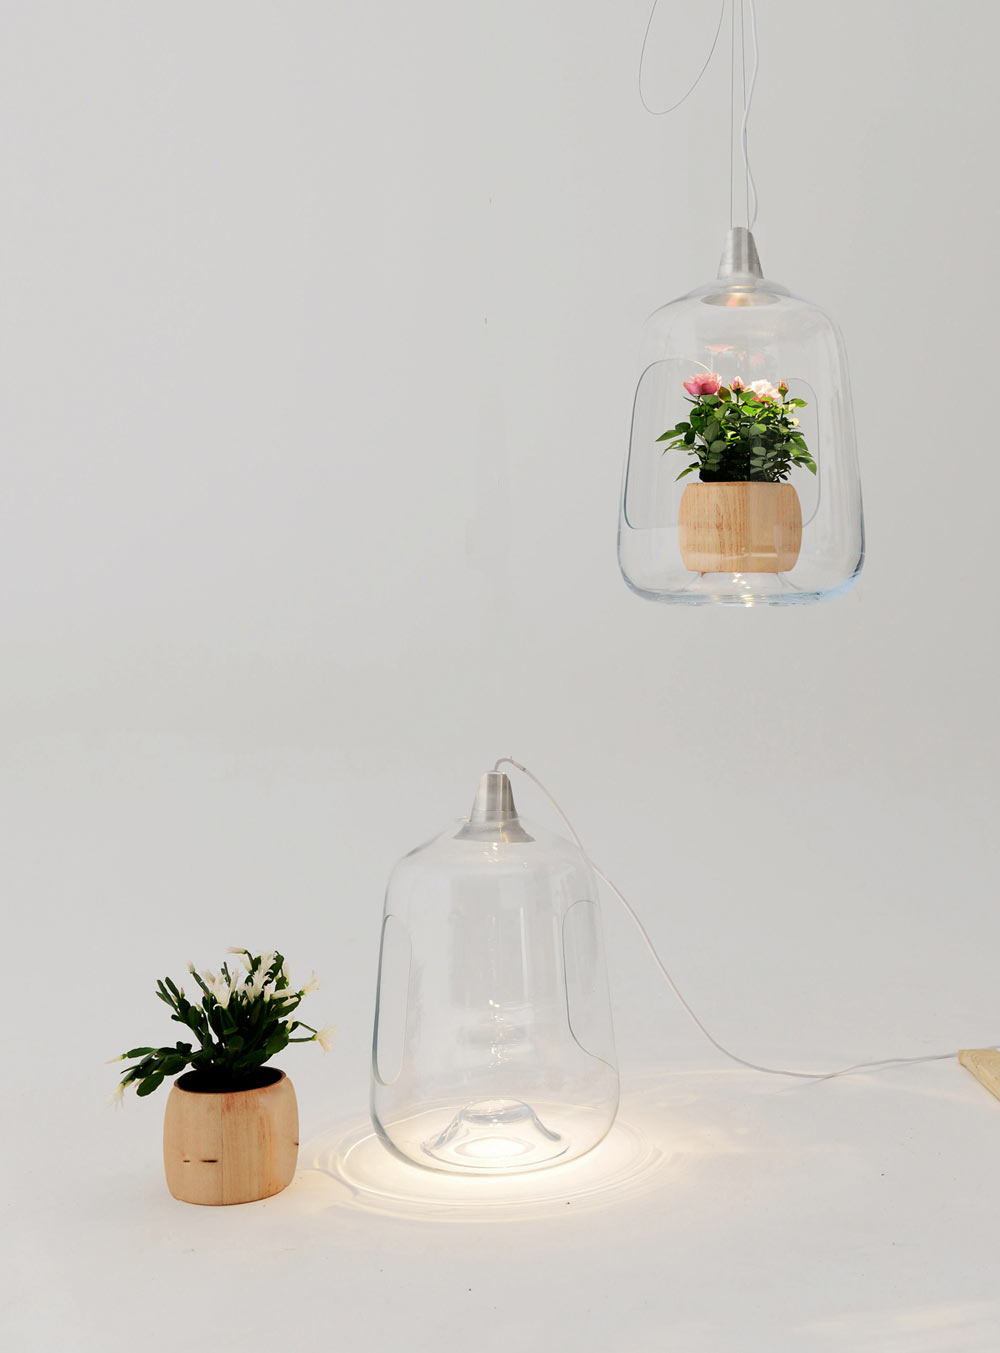 milo-led-lamp-planter-5